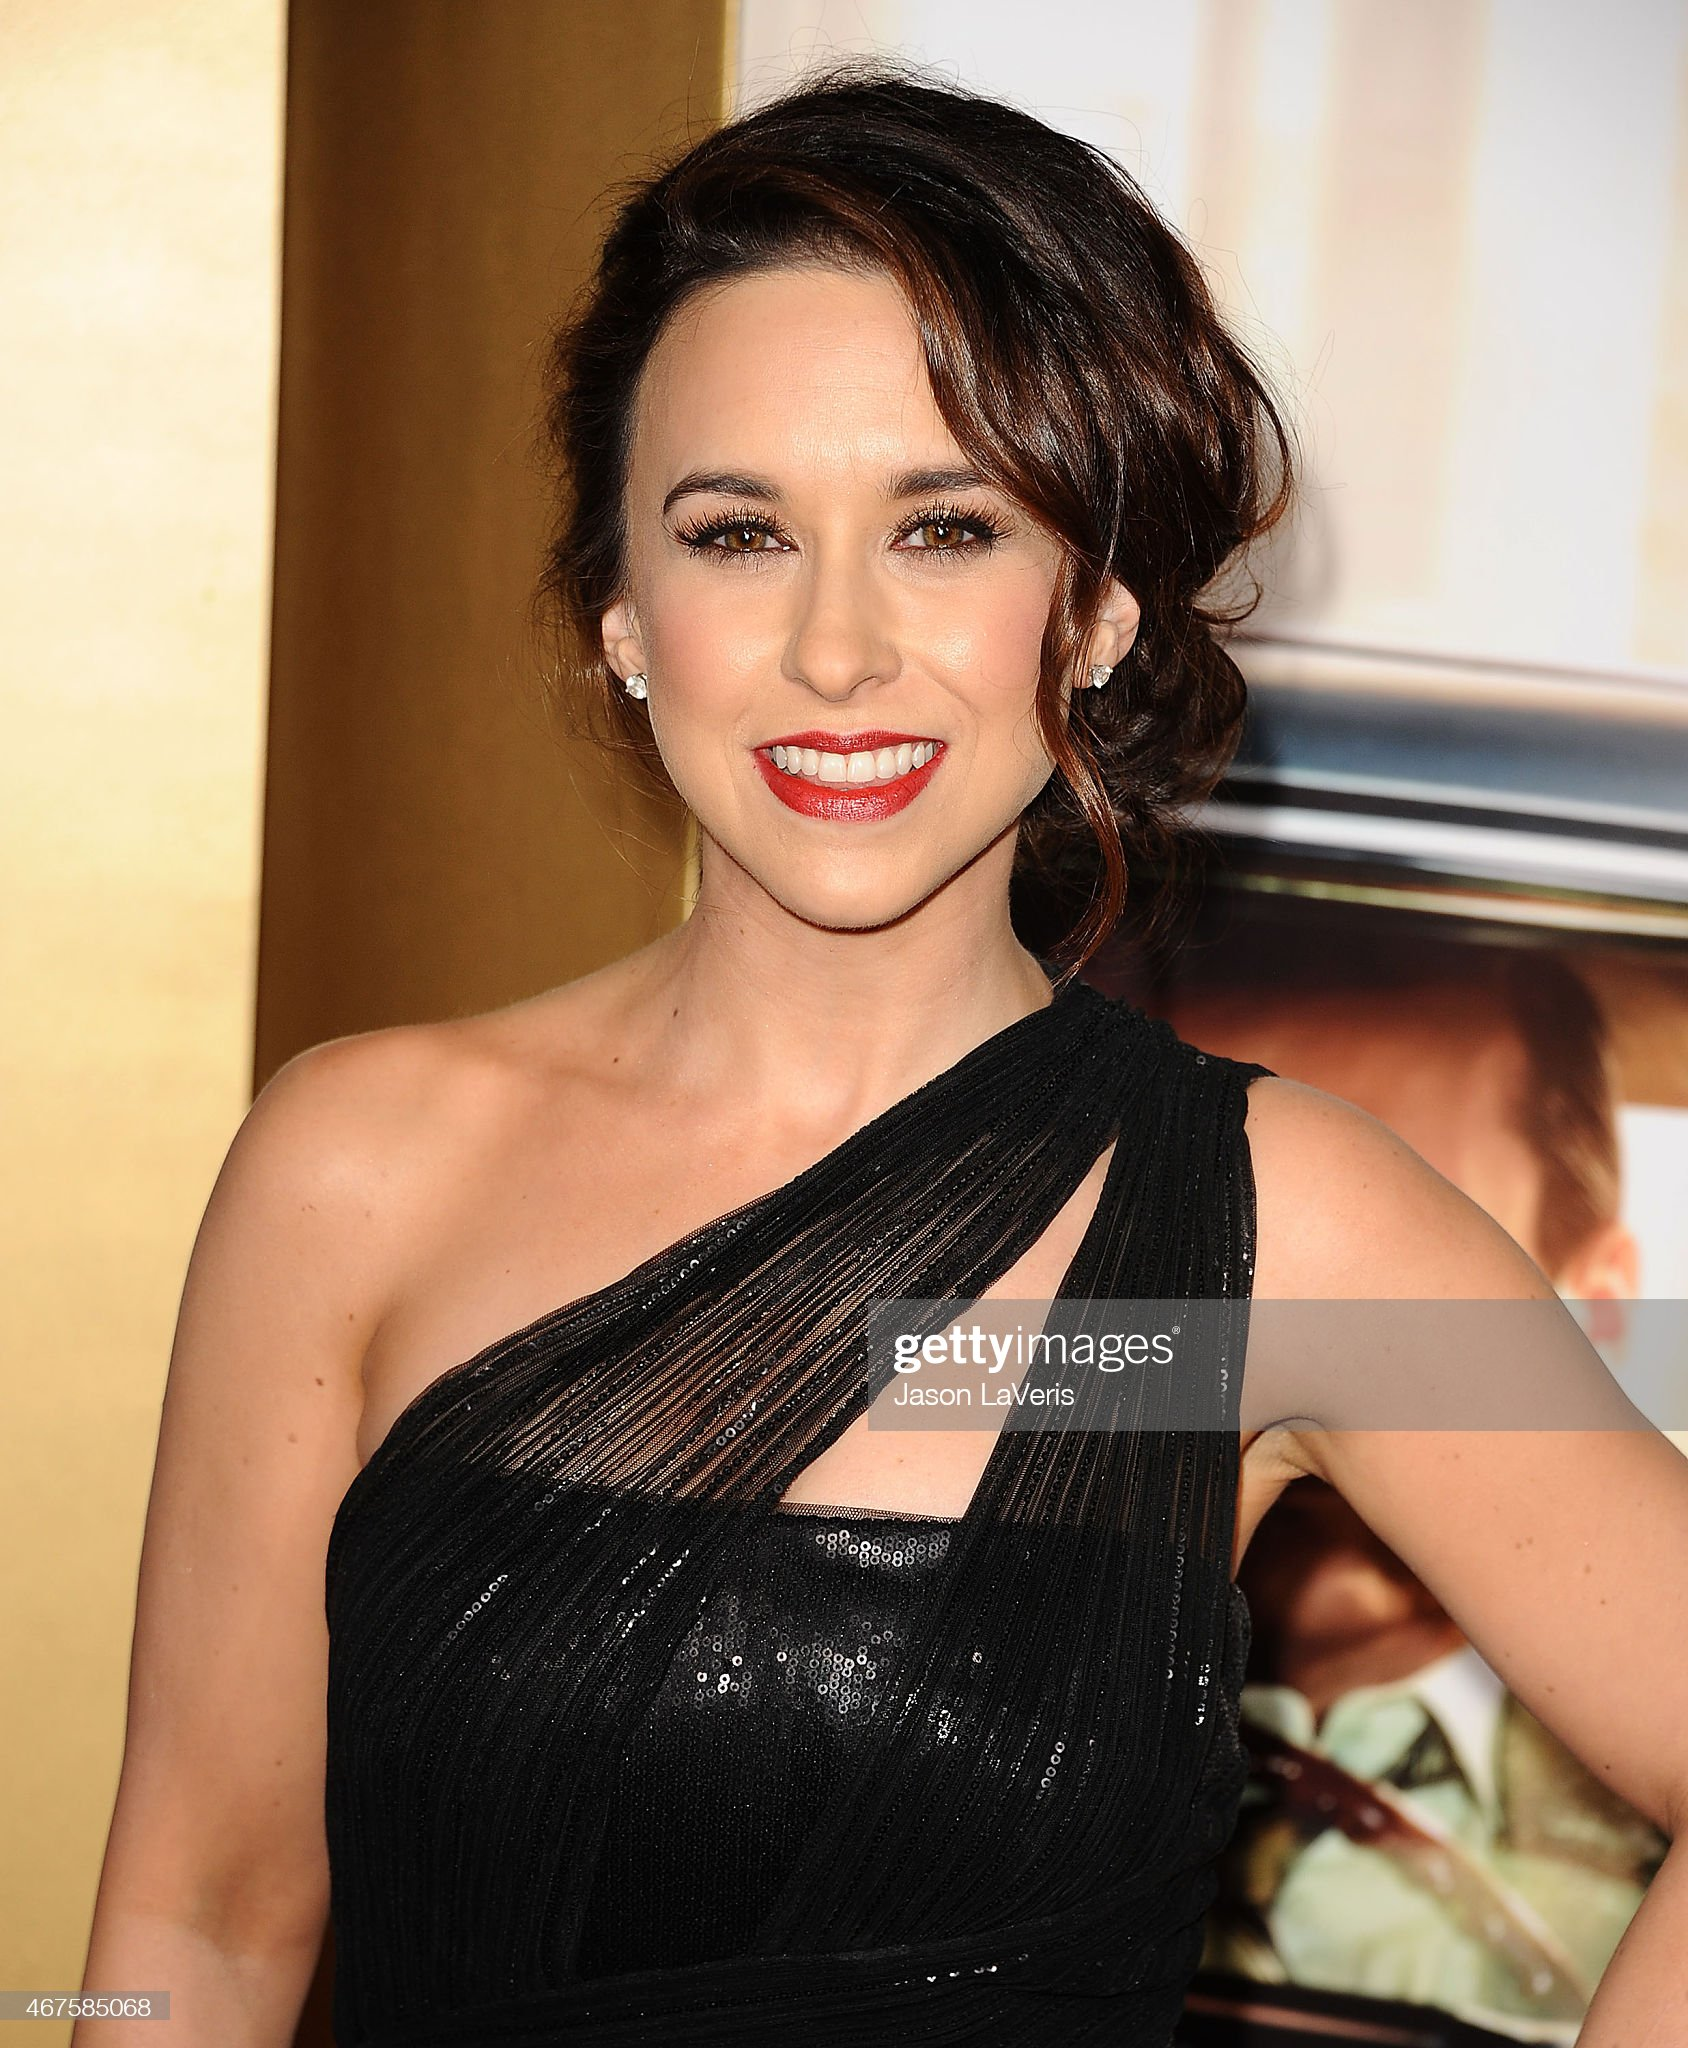 DEBATE sobre guapura de famosos y famosas - Página 3 Actress-lacey-chabert-attends-the-mad-men-black-red-ball-at-dorothy-picture-id467585068?s=2048x2048